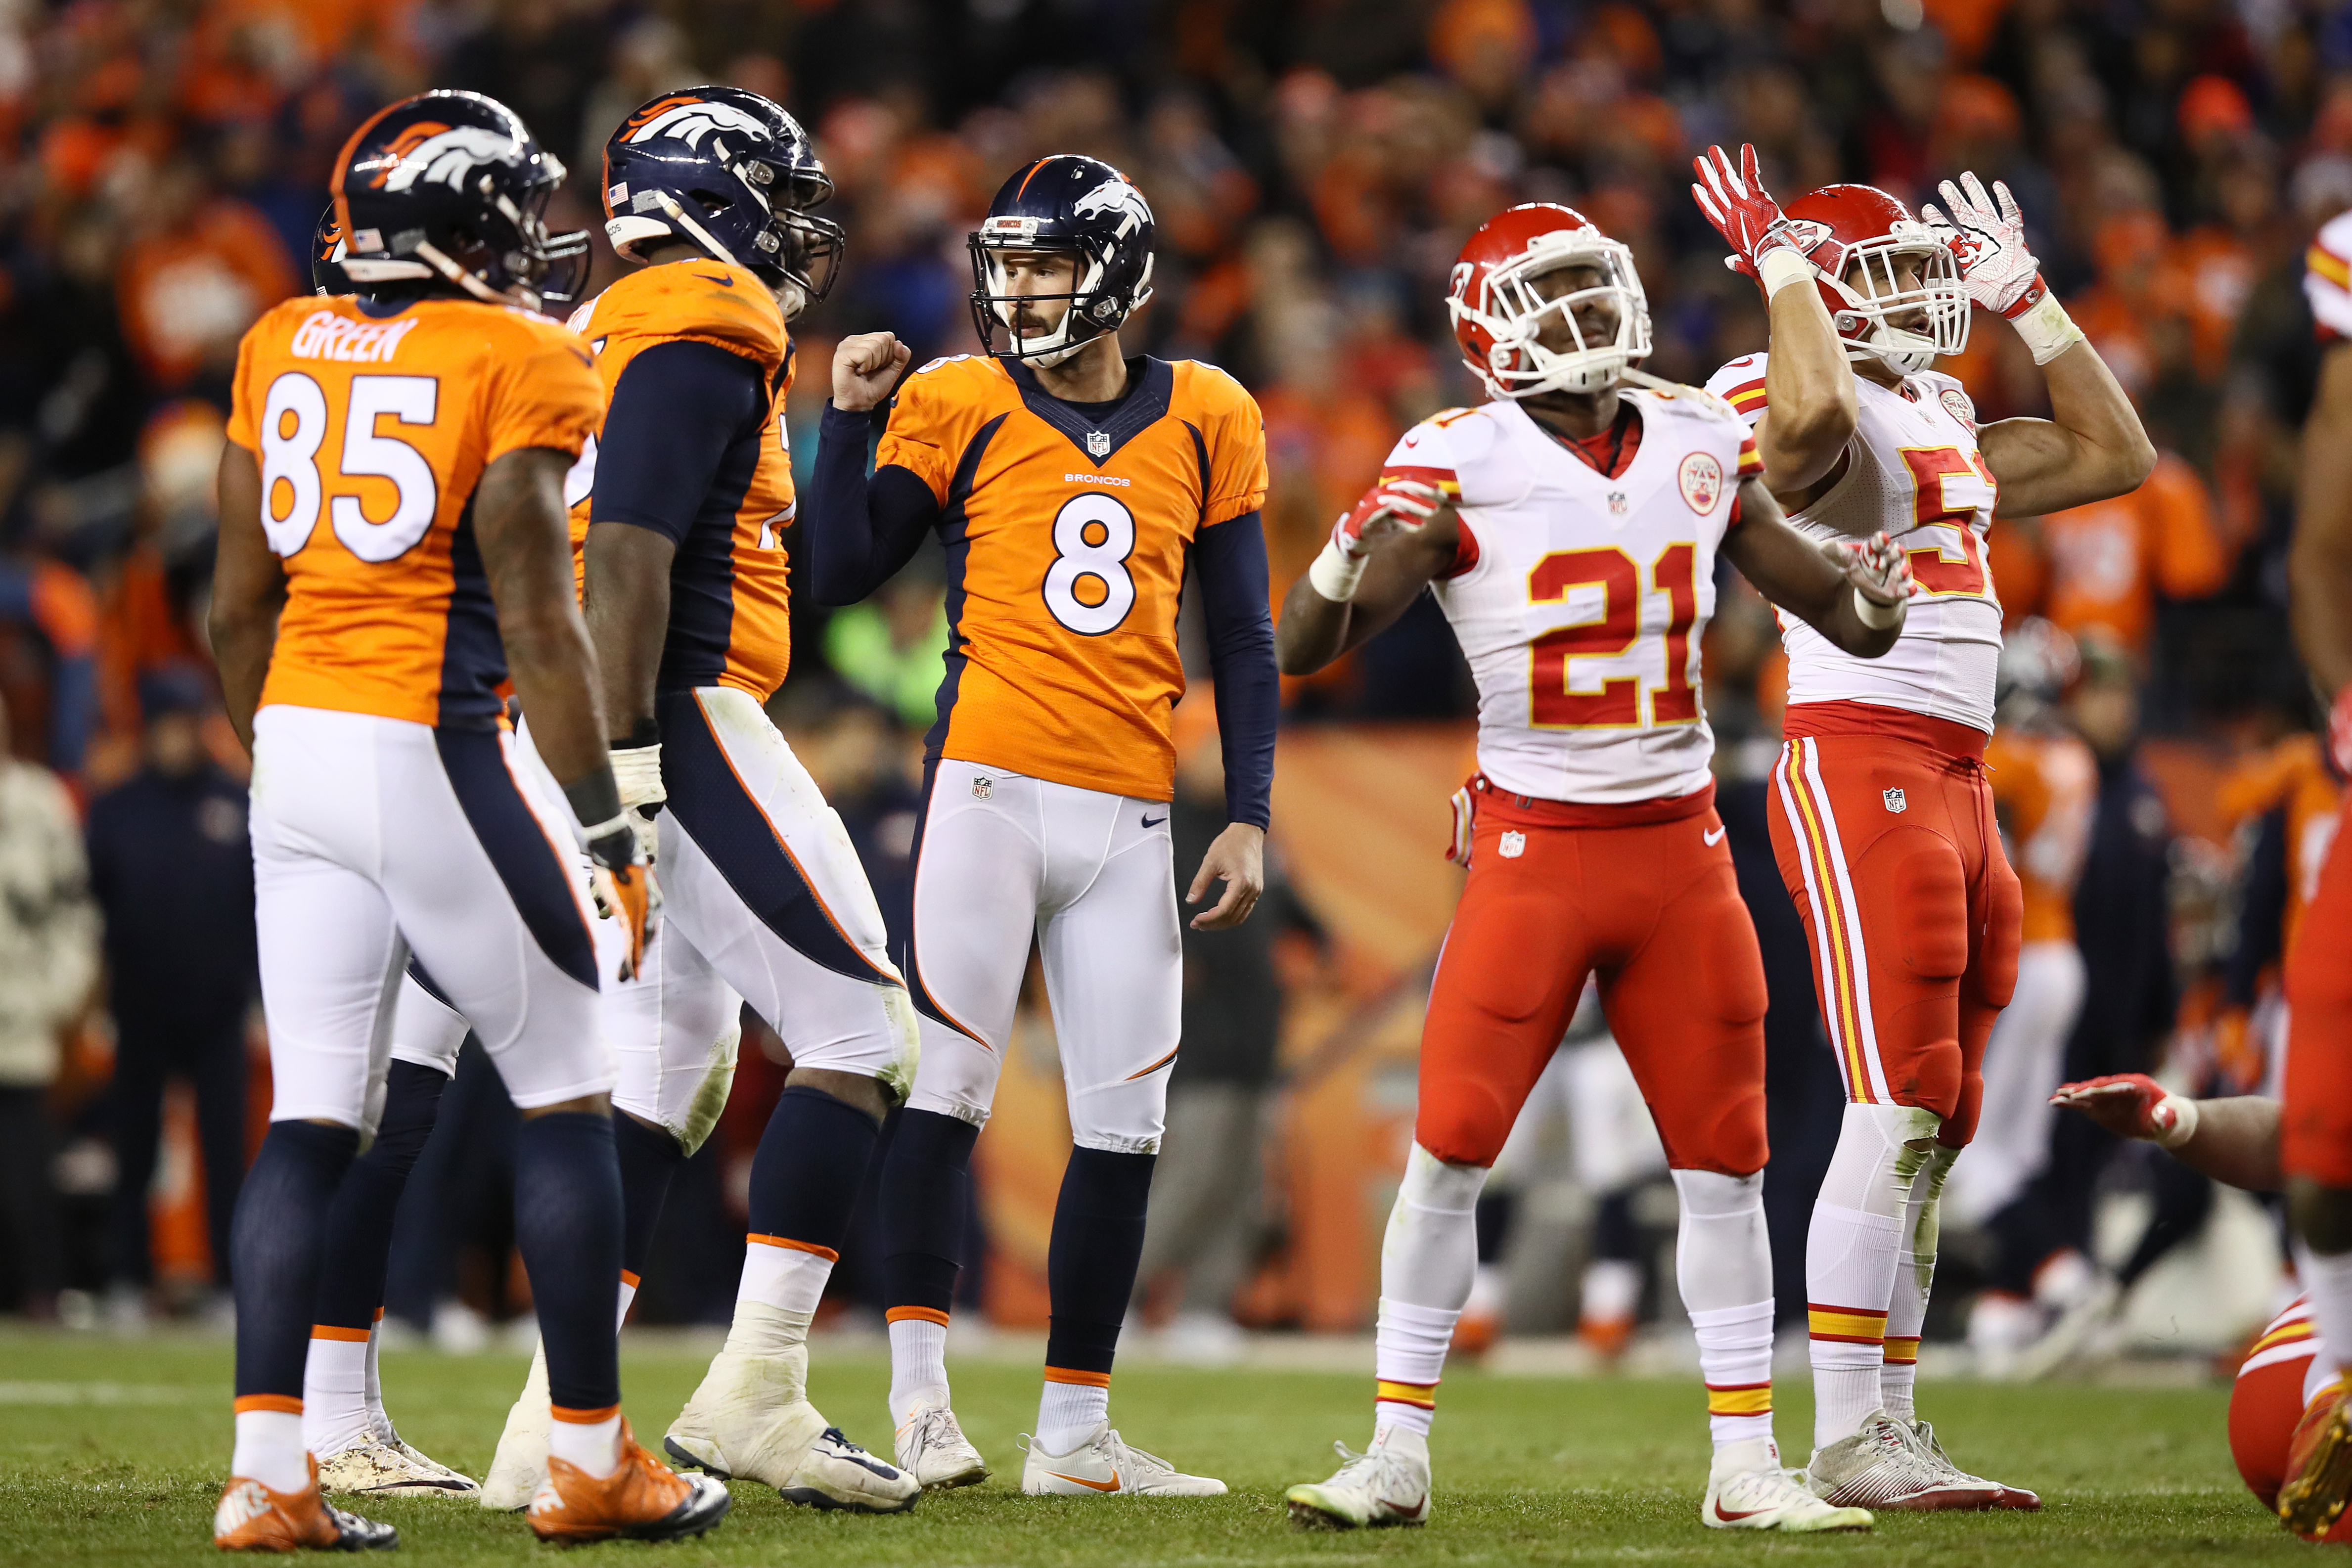 DENVER, CO - NOVEMBER 27: Kicker Brandon McManus #8 of the Denver Broncos celebrates scoring a field goal in overtime of the game against the Kansas City Chiefs at Sports Authority Field at Mile High on November 27, 2016 in Denver, Colorado. (Photo by Ezra Shaw/Getty Images)